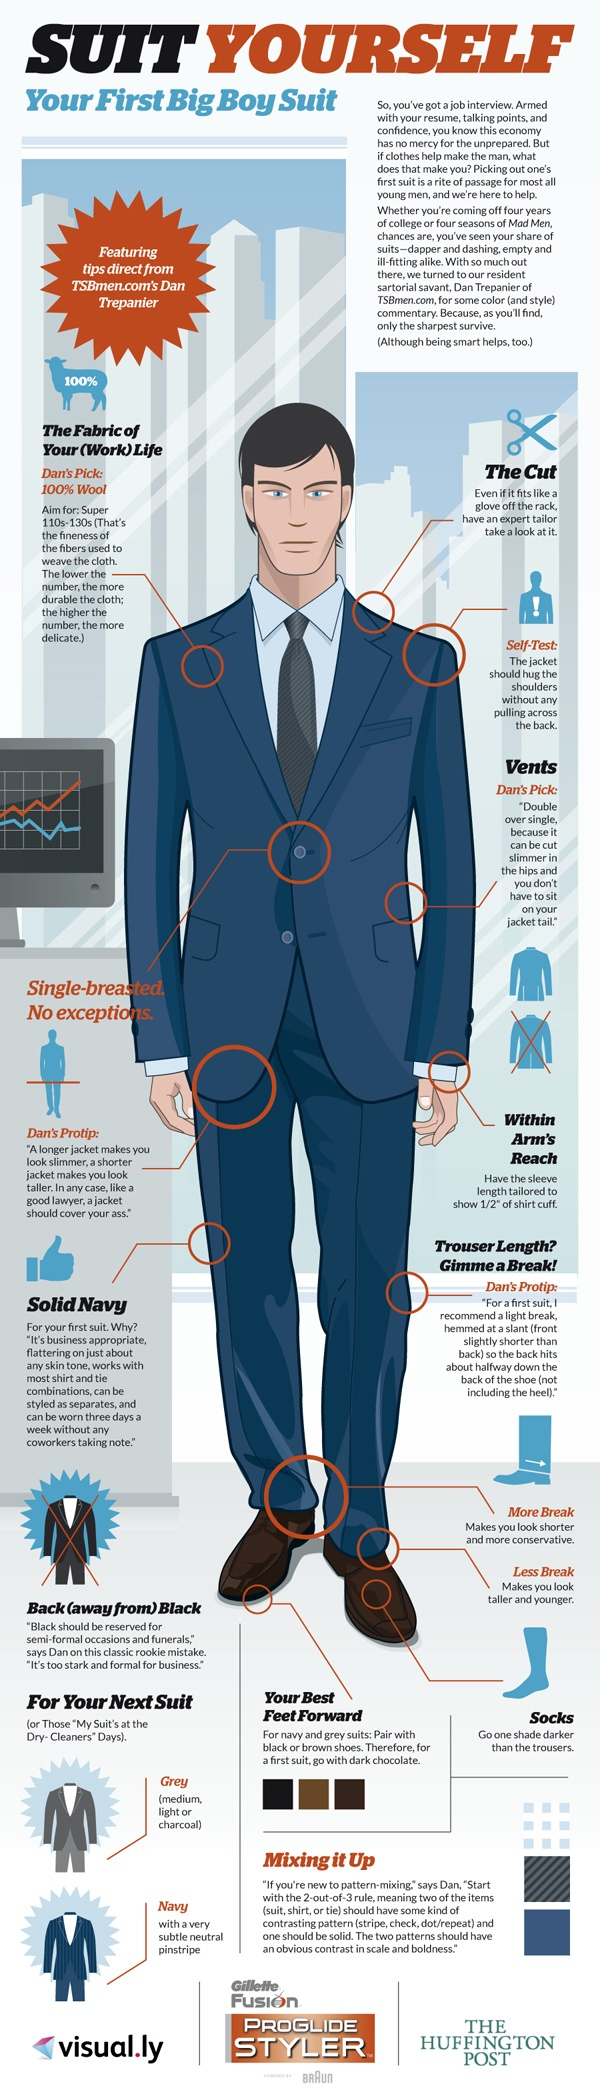 best images about what to wear to the interview men on proper interview attire this article explains all the basics of what you should wear to look professional for an interview the better that you look the